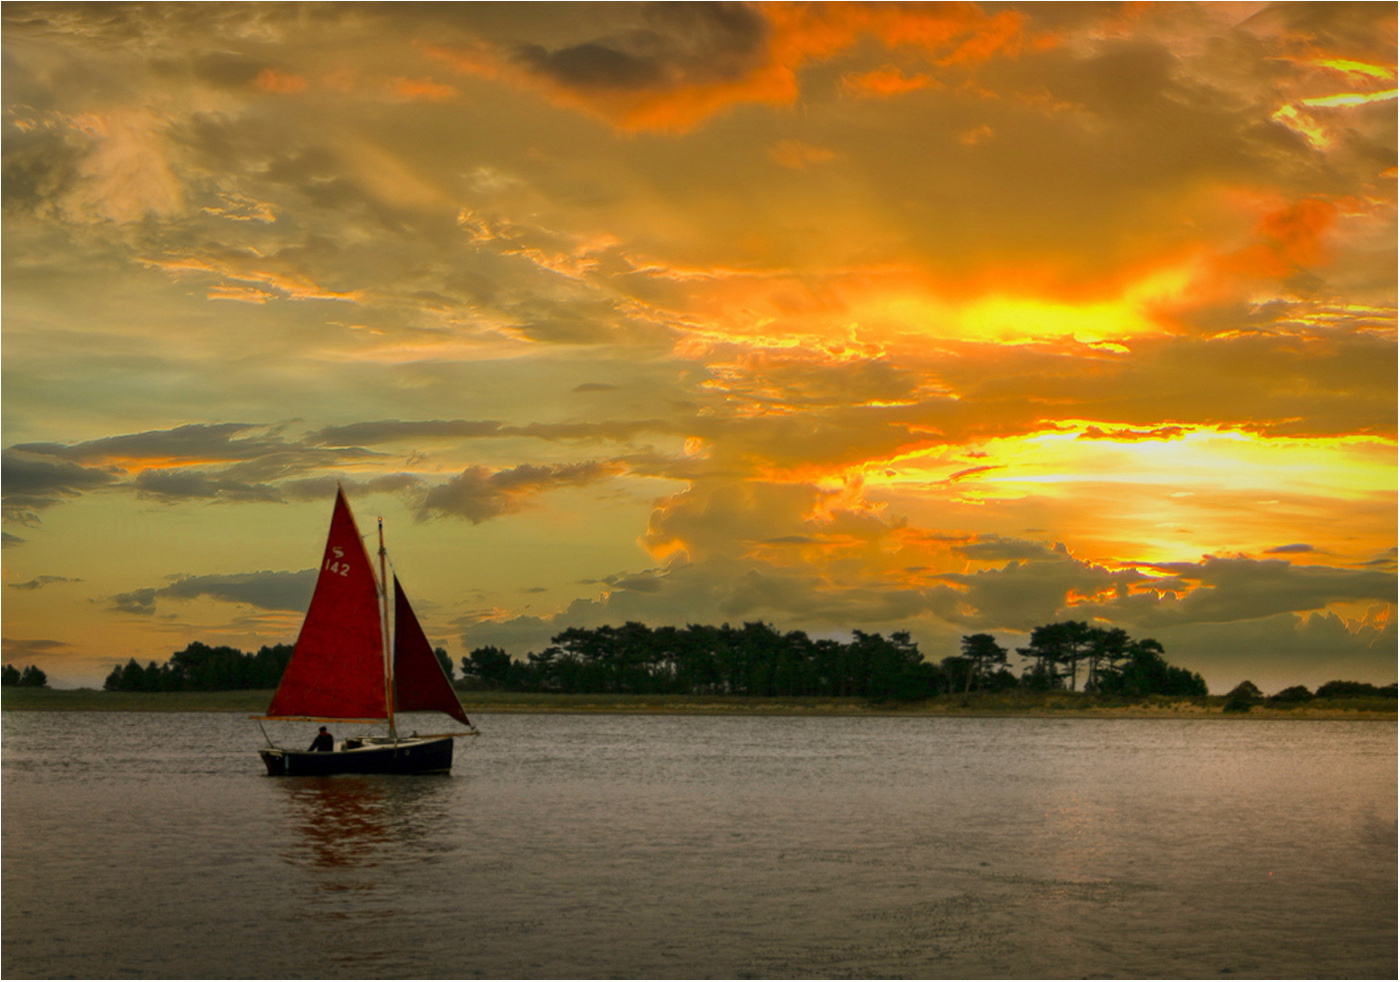 2nd Place: Sailing Home (Bill Roberts)